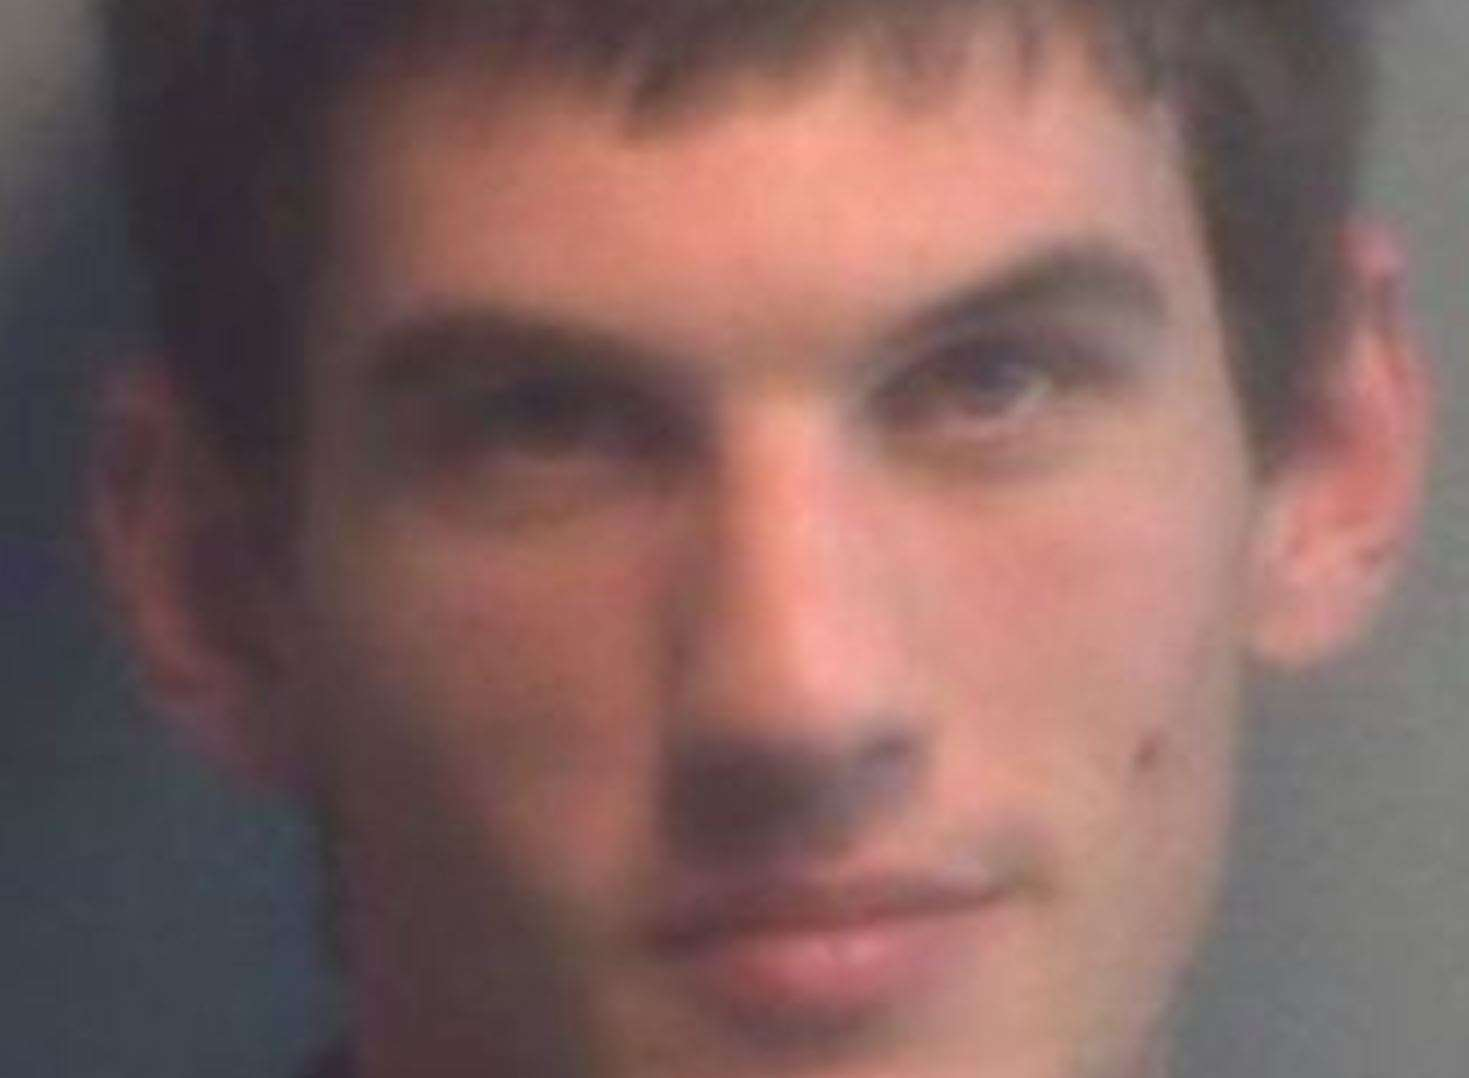 Taylor Martin was jailed for 17 years after stabbing his former friend in the stomach